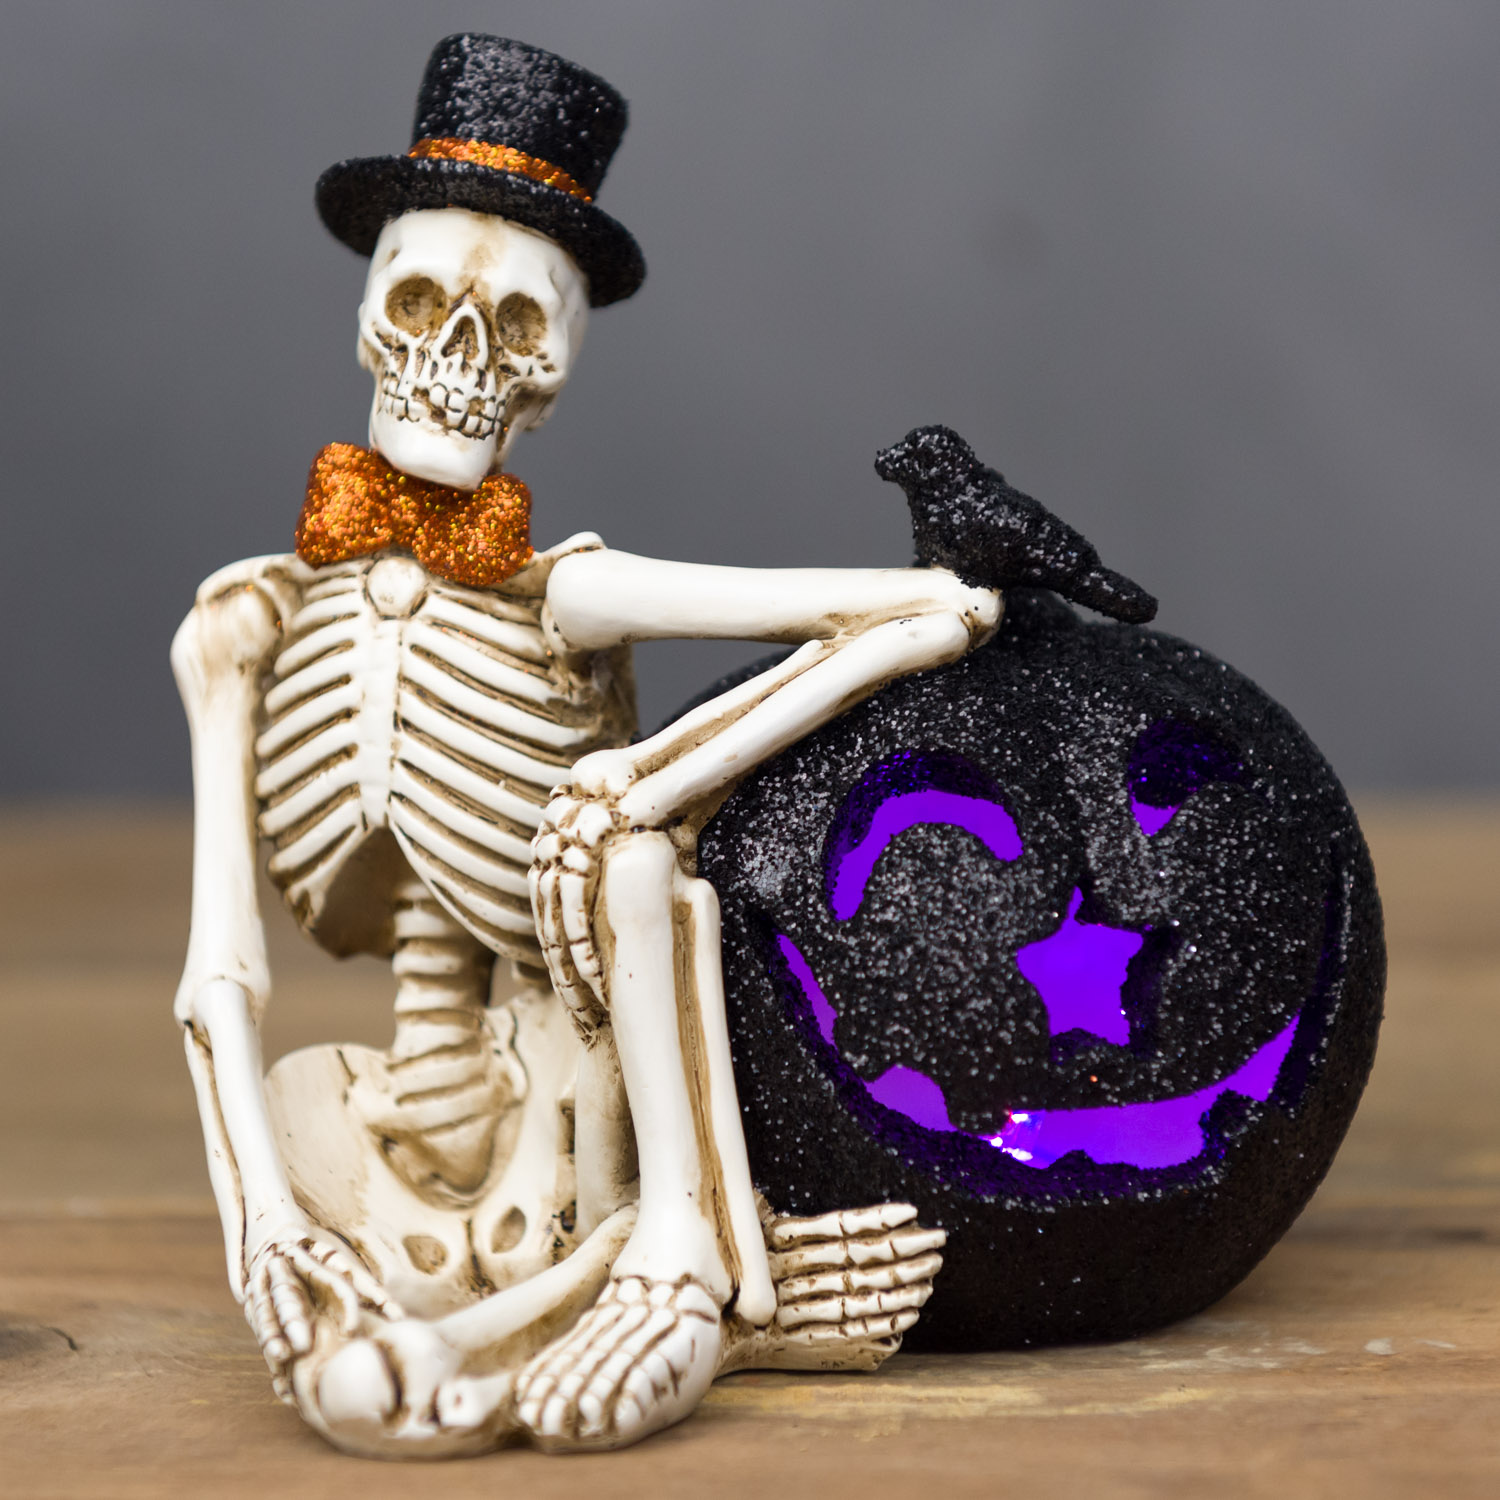 light up skeleton figurine